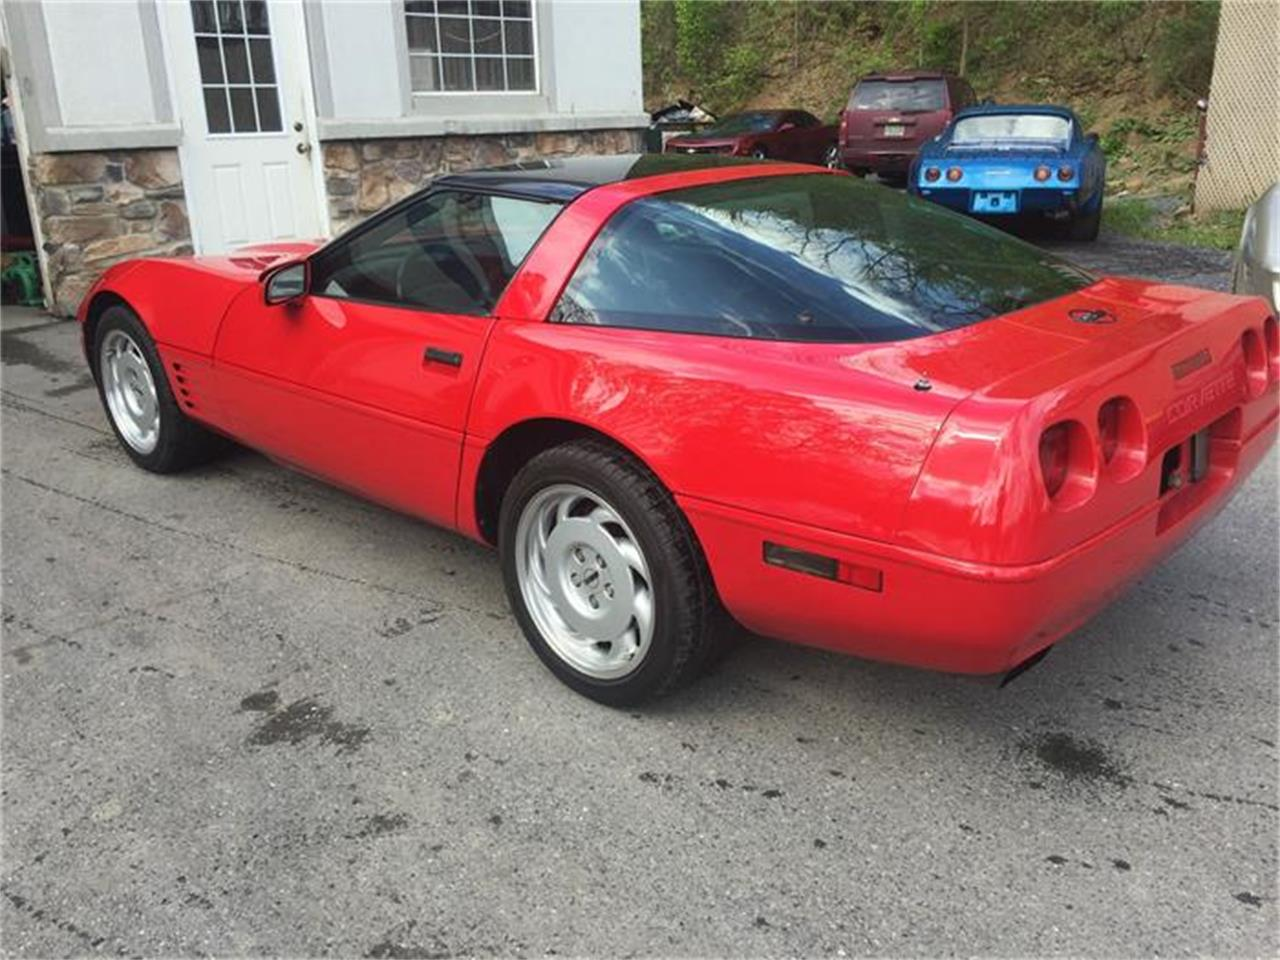 Large Picture of '92 Chevrolet Corvette located in Pennsylvania - $8,500.00 Offered by Keystone Corvettes - I0FG